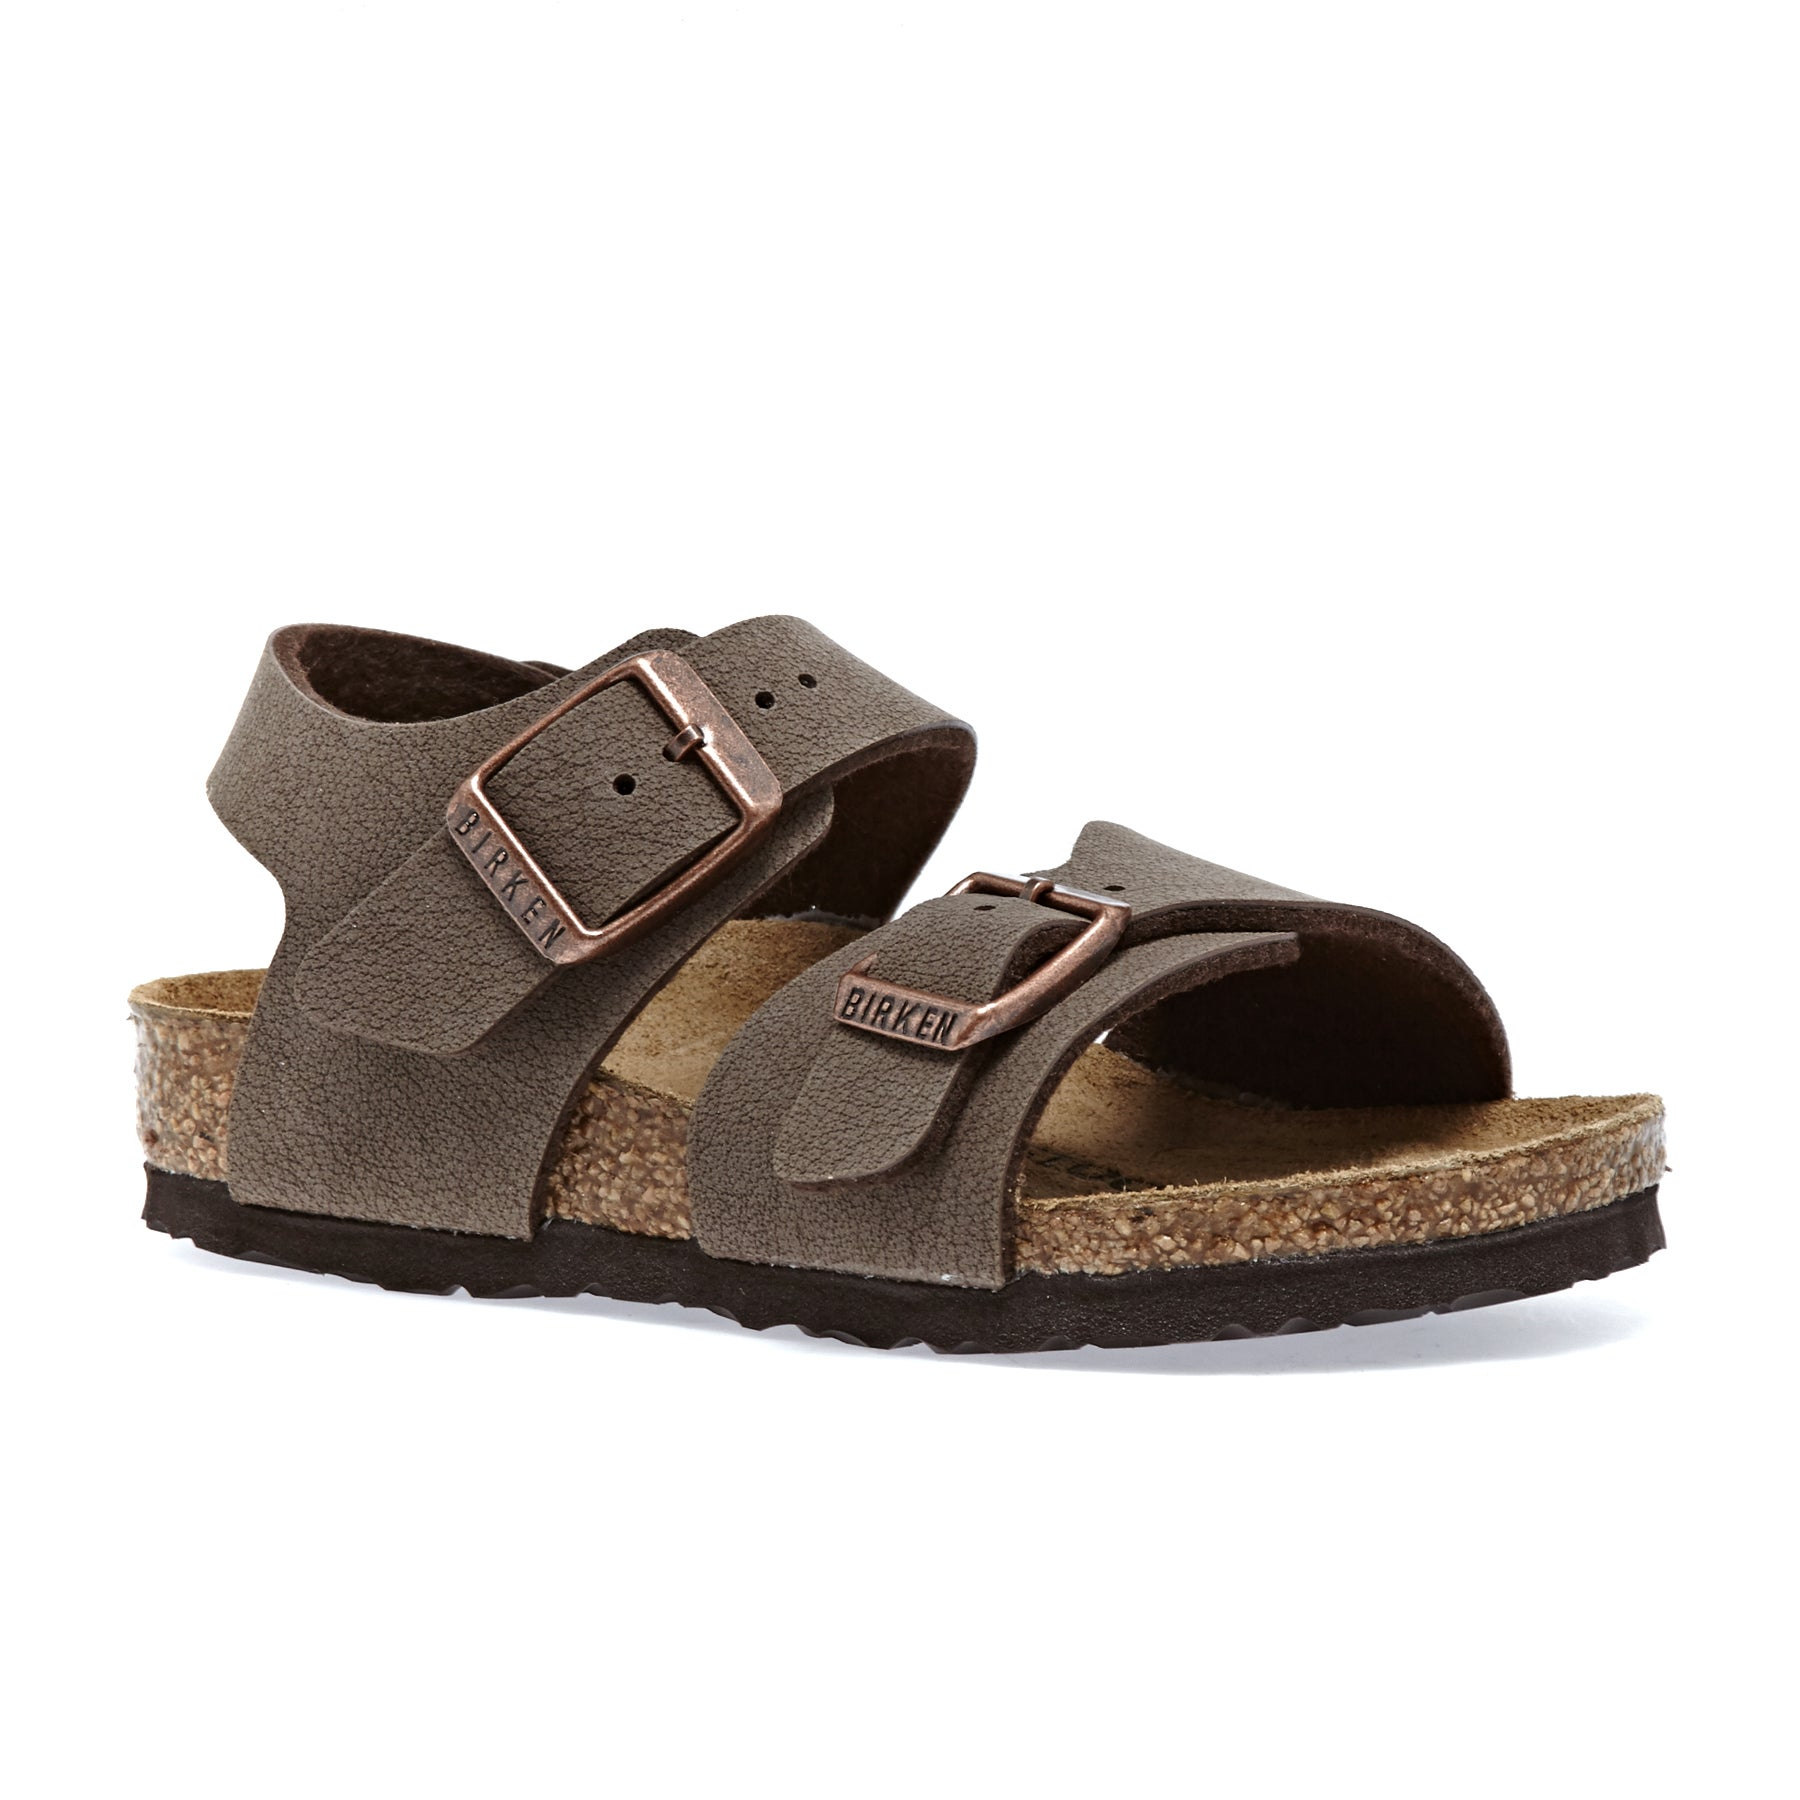 7d884916d7c0 Birkenstock New York Kids Sandals available from Surfdome